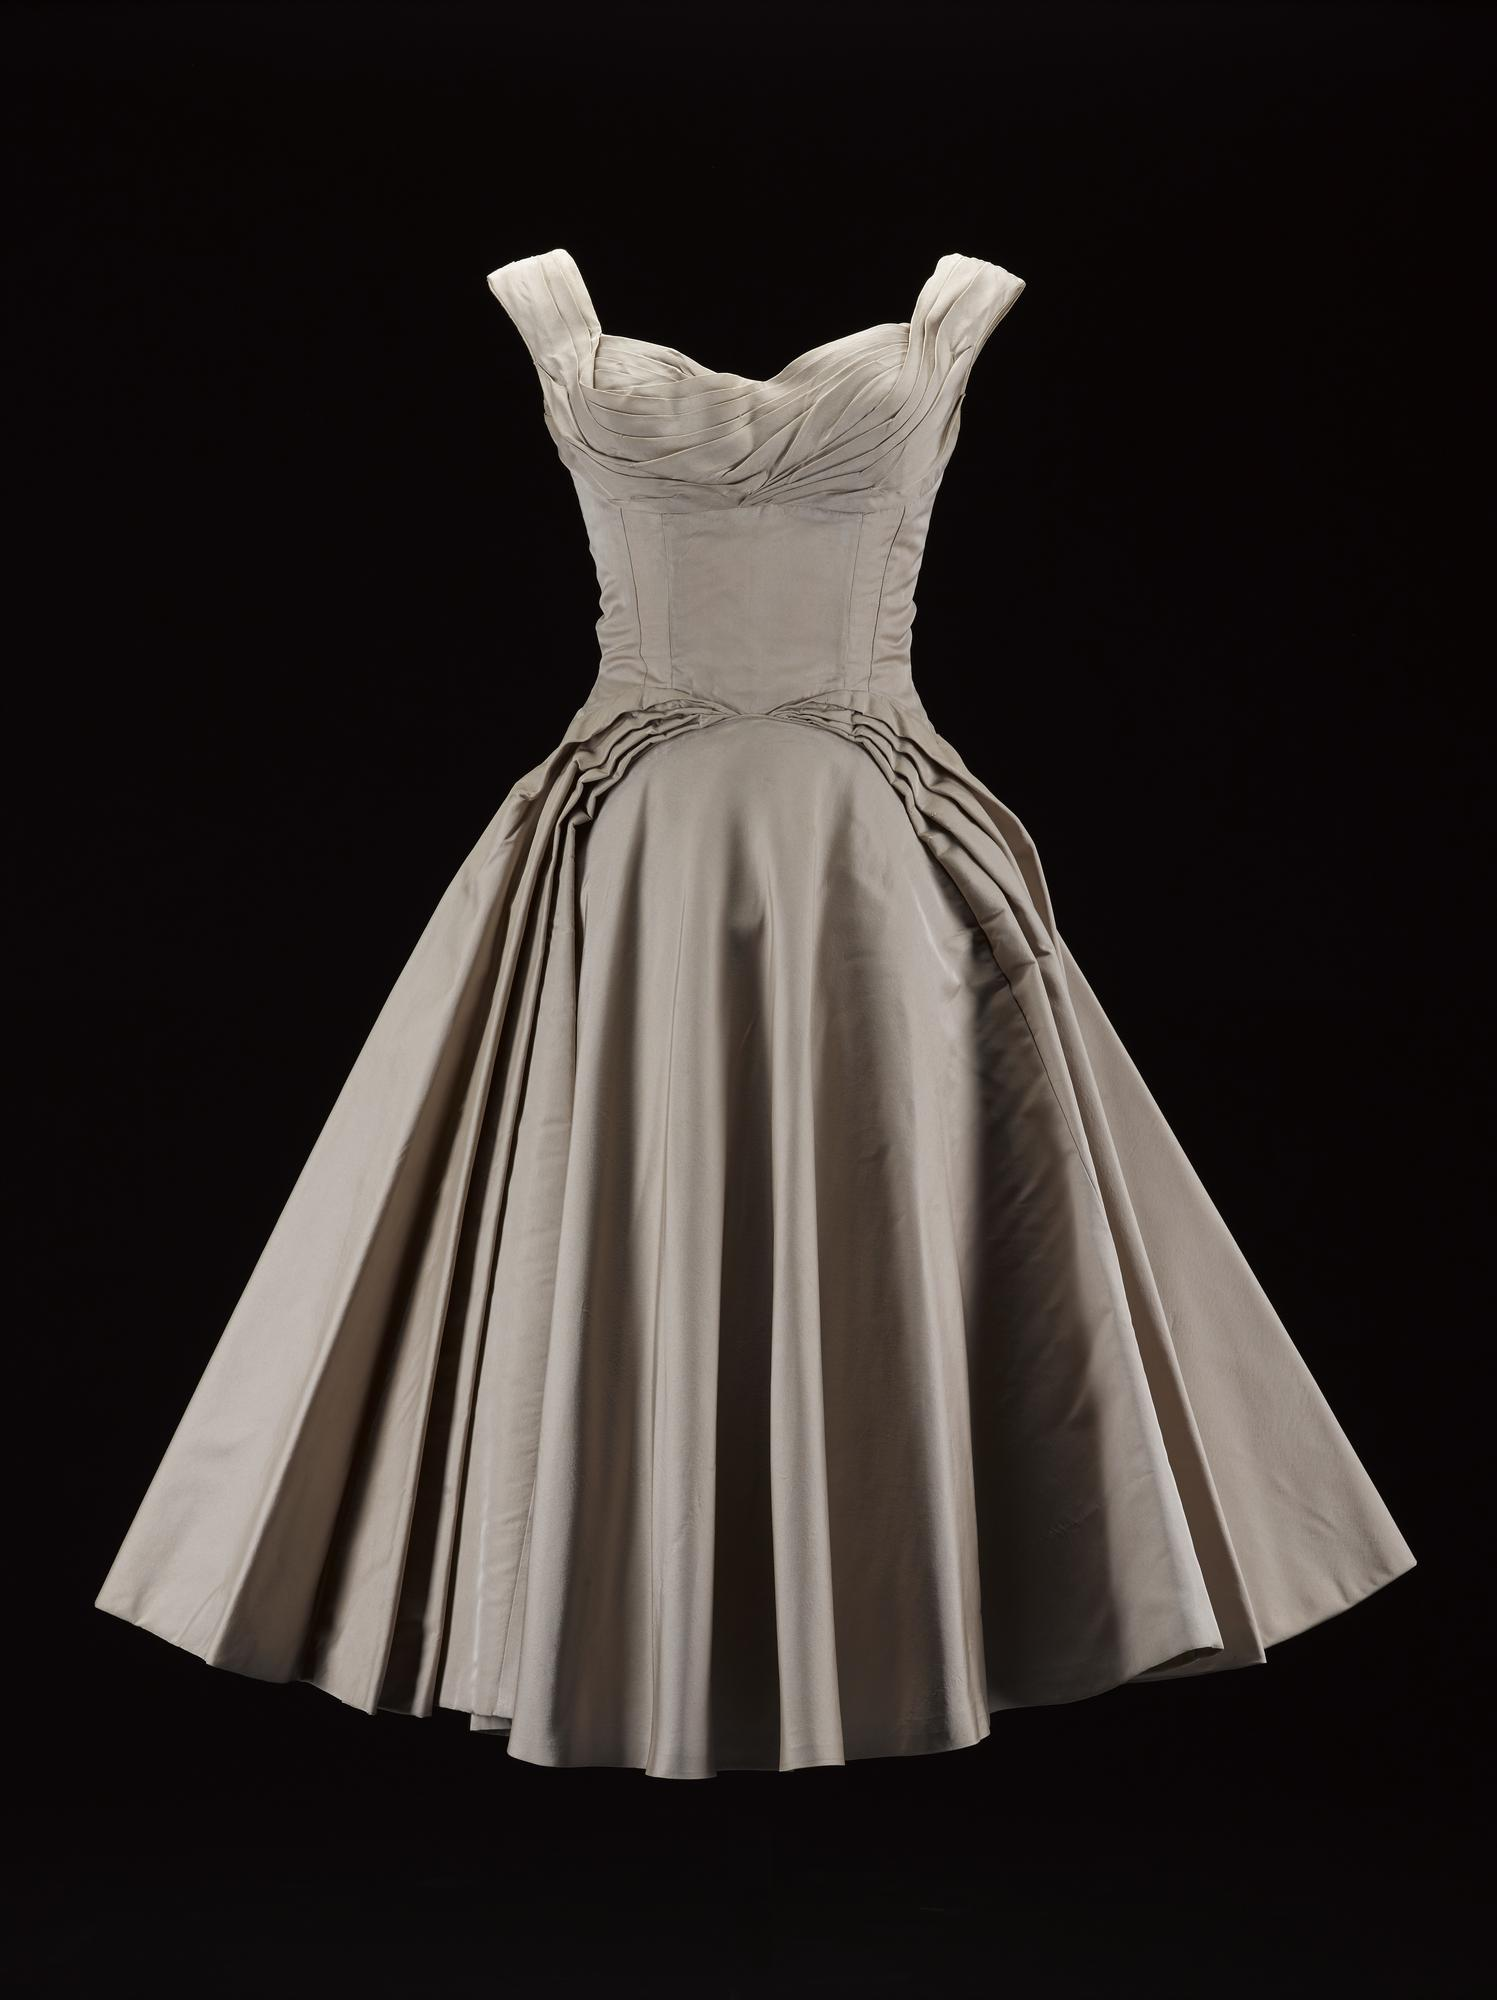 Woman's evening dress or ball gown, in pale beige silk taffeta, with a low sweetheart neckline with pleated detailing and wide shoulder straps, fitted, structured bodice with off-centre seams and padded bust and wide curving pleats to full stiffened skirt, three-quarter length, labelled in the centre back, the bodice of the dress is unlined, the skirt lined with stiffened paper: American, by Ceil Chapman, mid 1950s